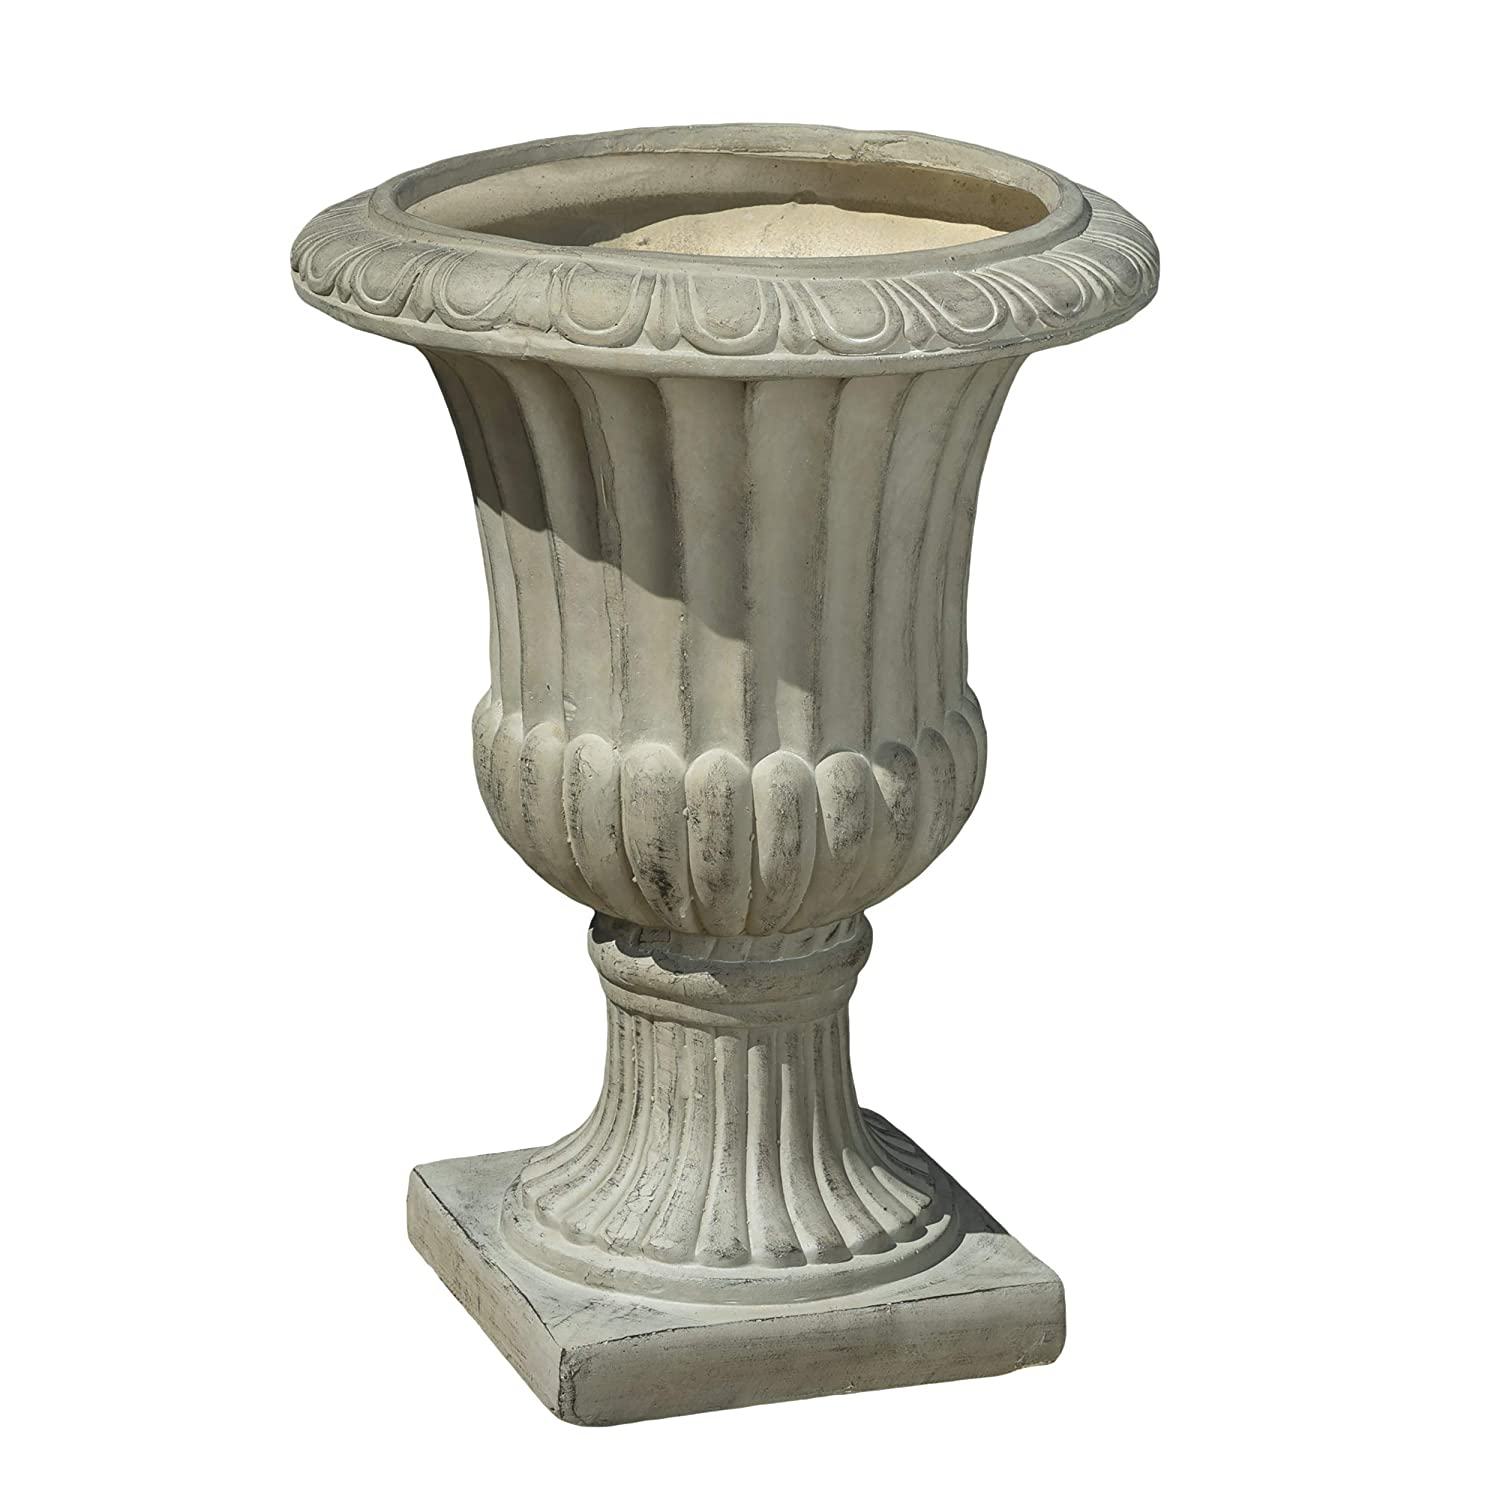 Great Deal Furniture Outdoor//Indoor Antique Green Stone Finish Planter//Urn